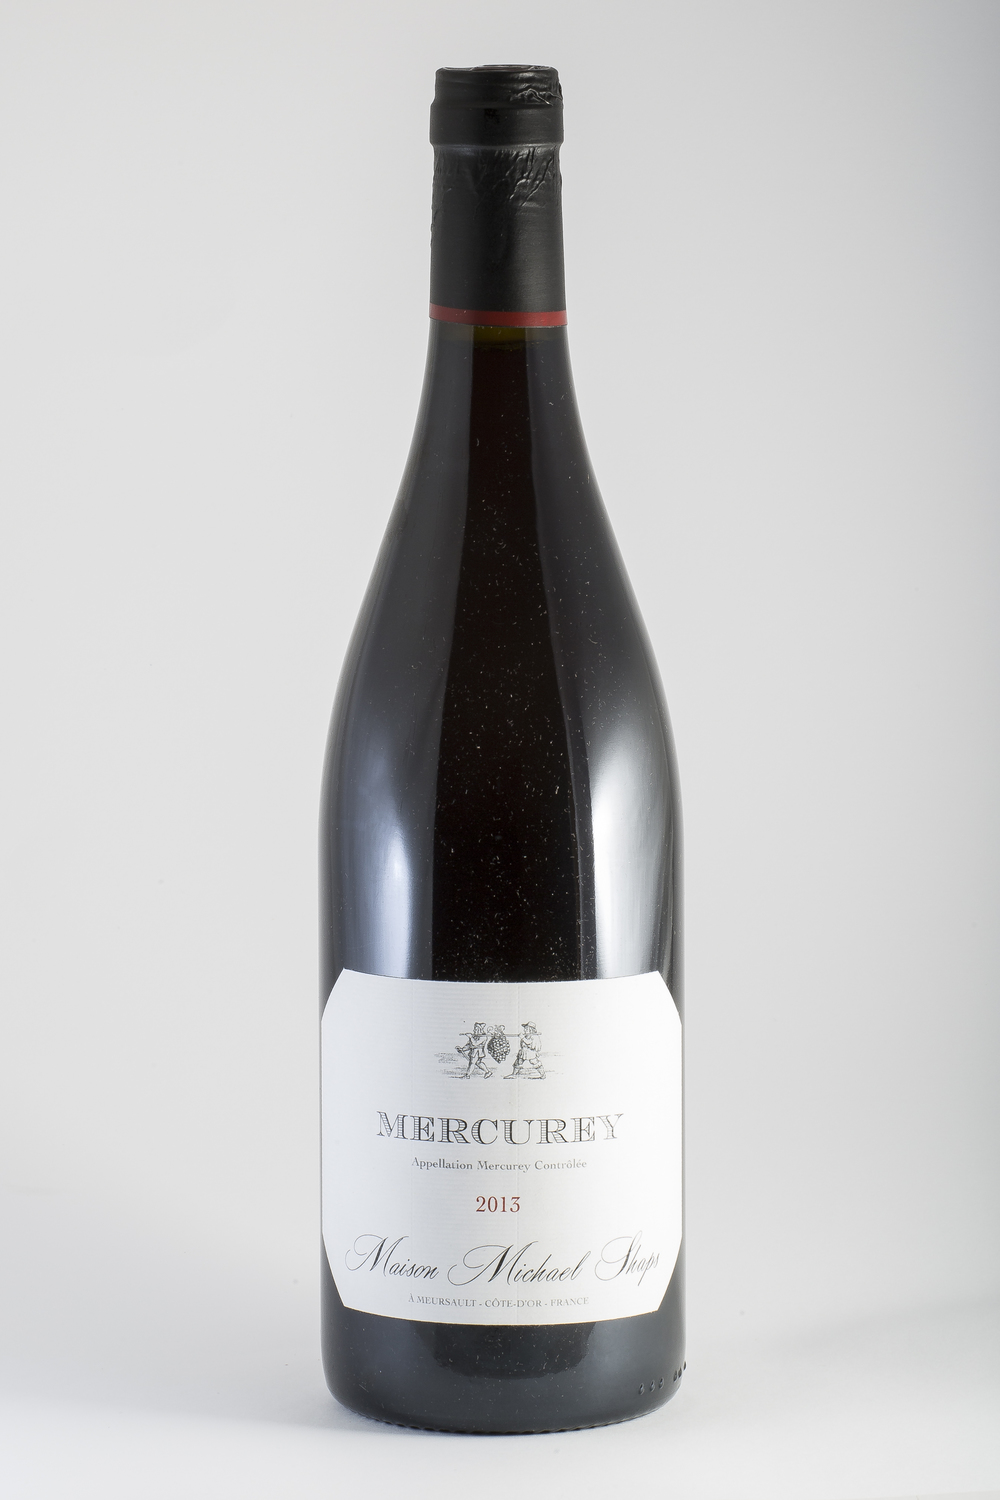 Maison Shaps 2014 Mercurey Rouge   $32 The Pinot Noir site in this appellation is known for it concentration and roundness.  We try to bring out the darker red fruit notes and to enhance them with subtle tannins and slight oak nuances.  The traditional fermentation and aging allow the natural nuances to shine through and produce a great value in pinot noir.